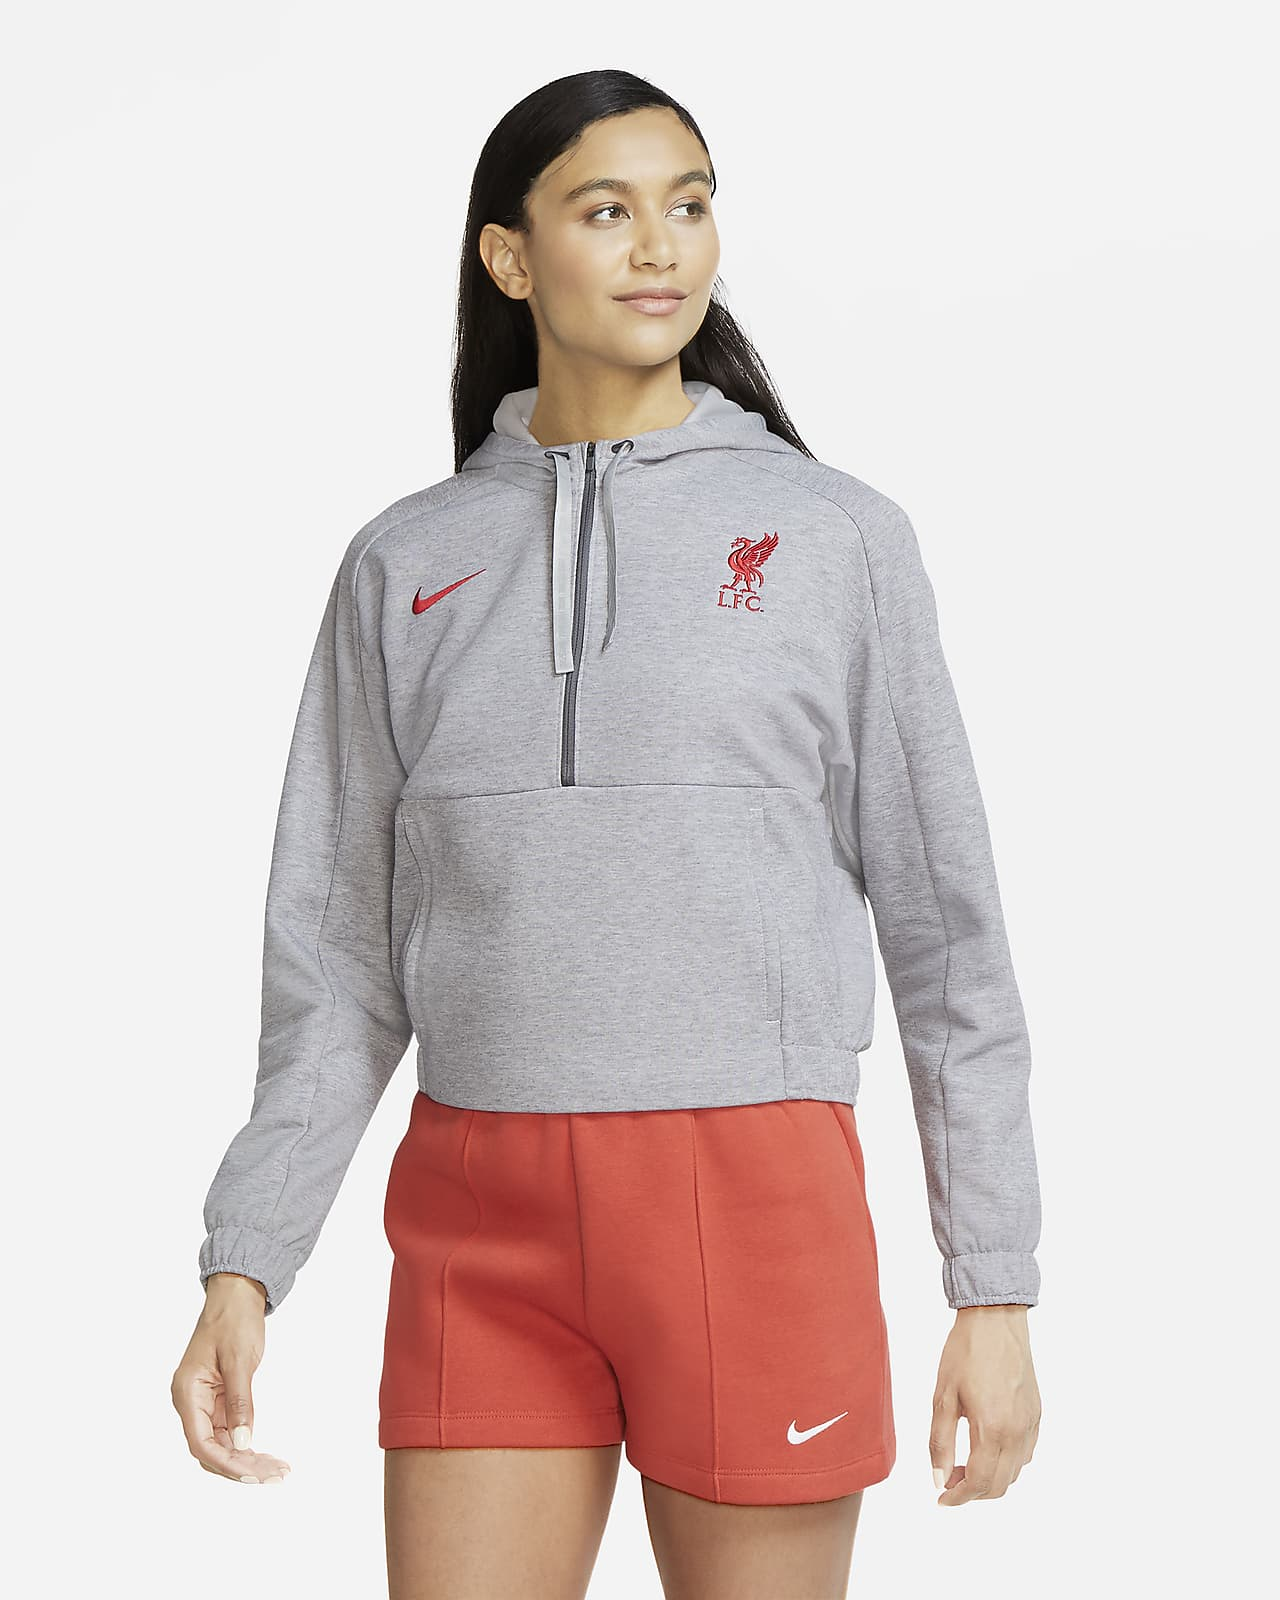 Liverpool F.C. Women's Cropped 1/2-Zip Football Hoodie